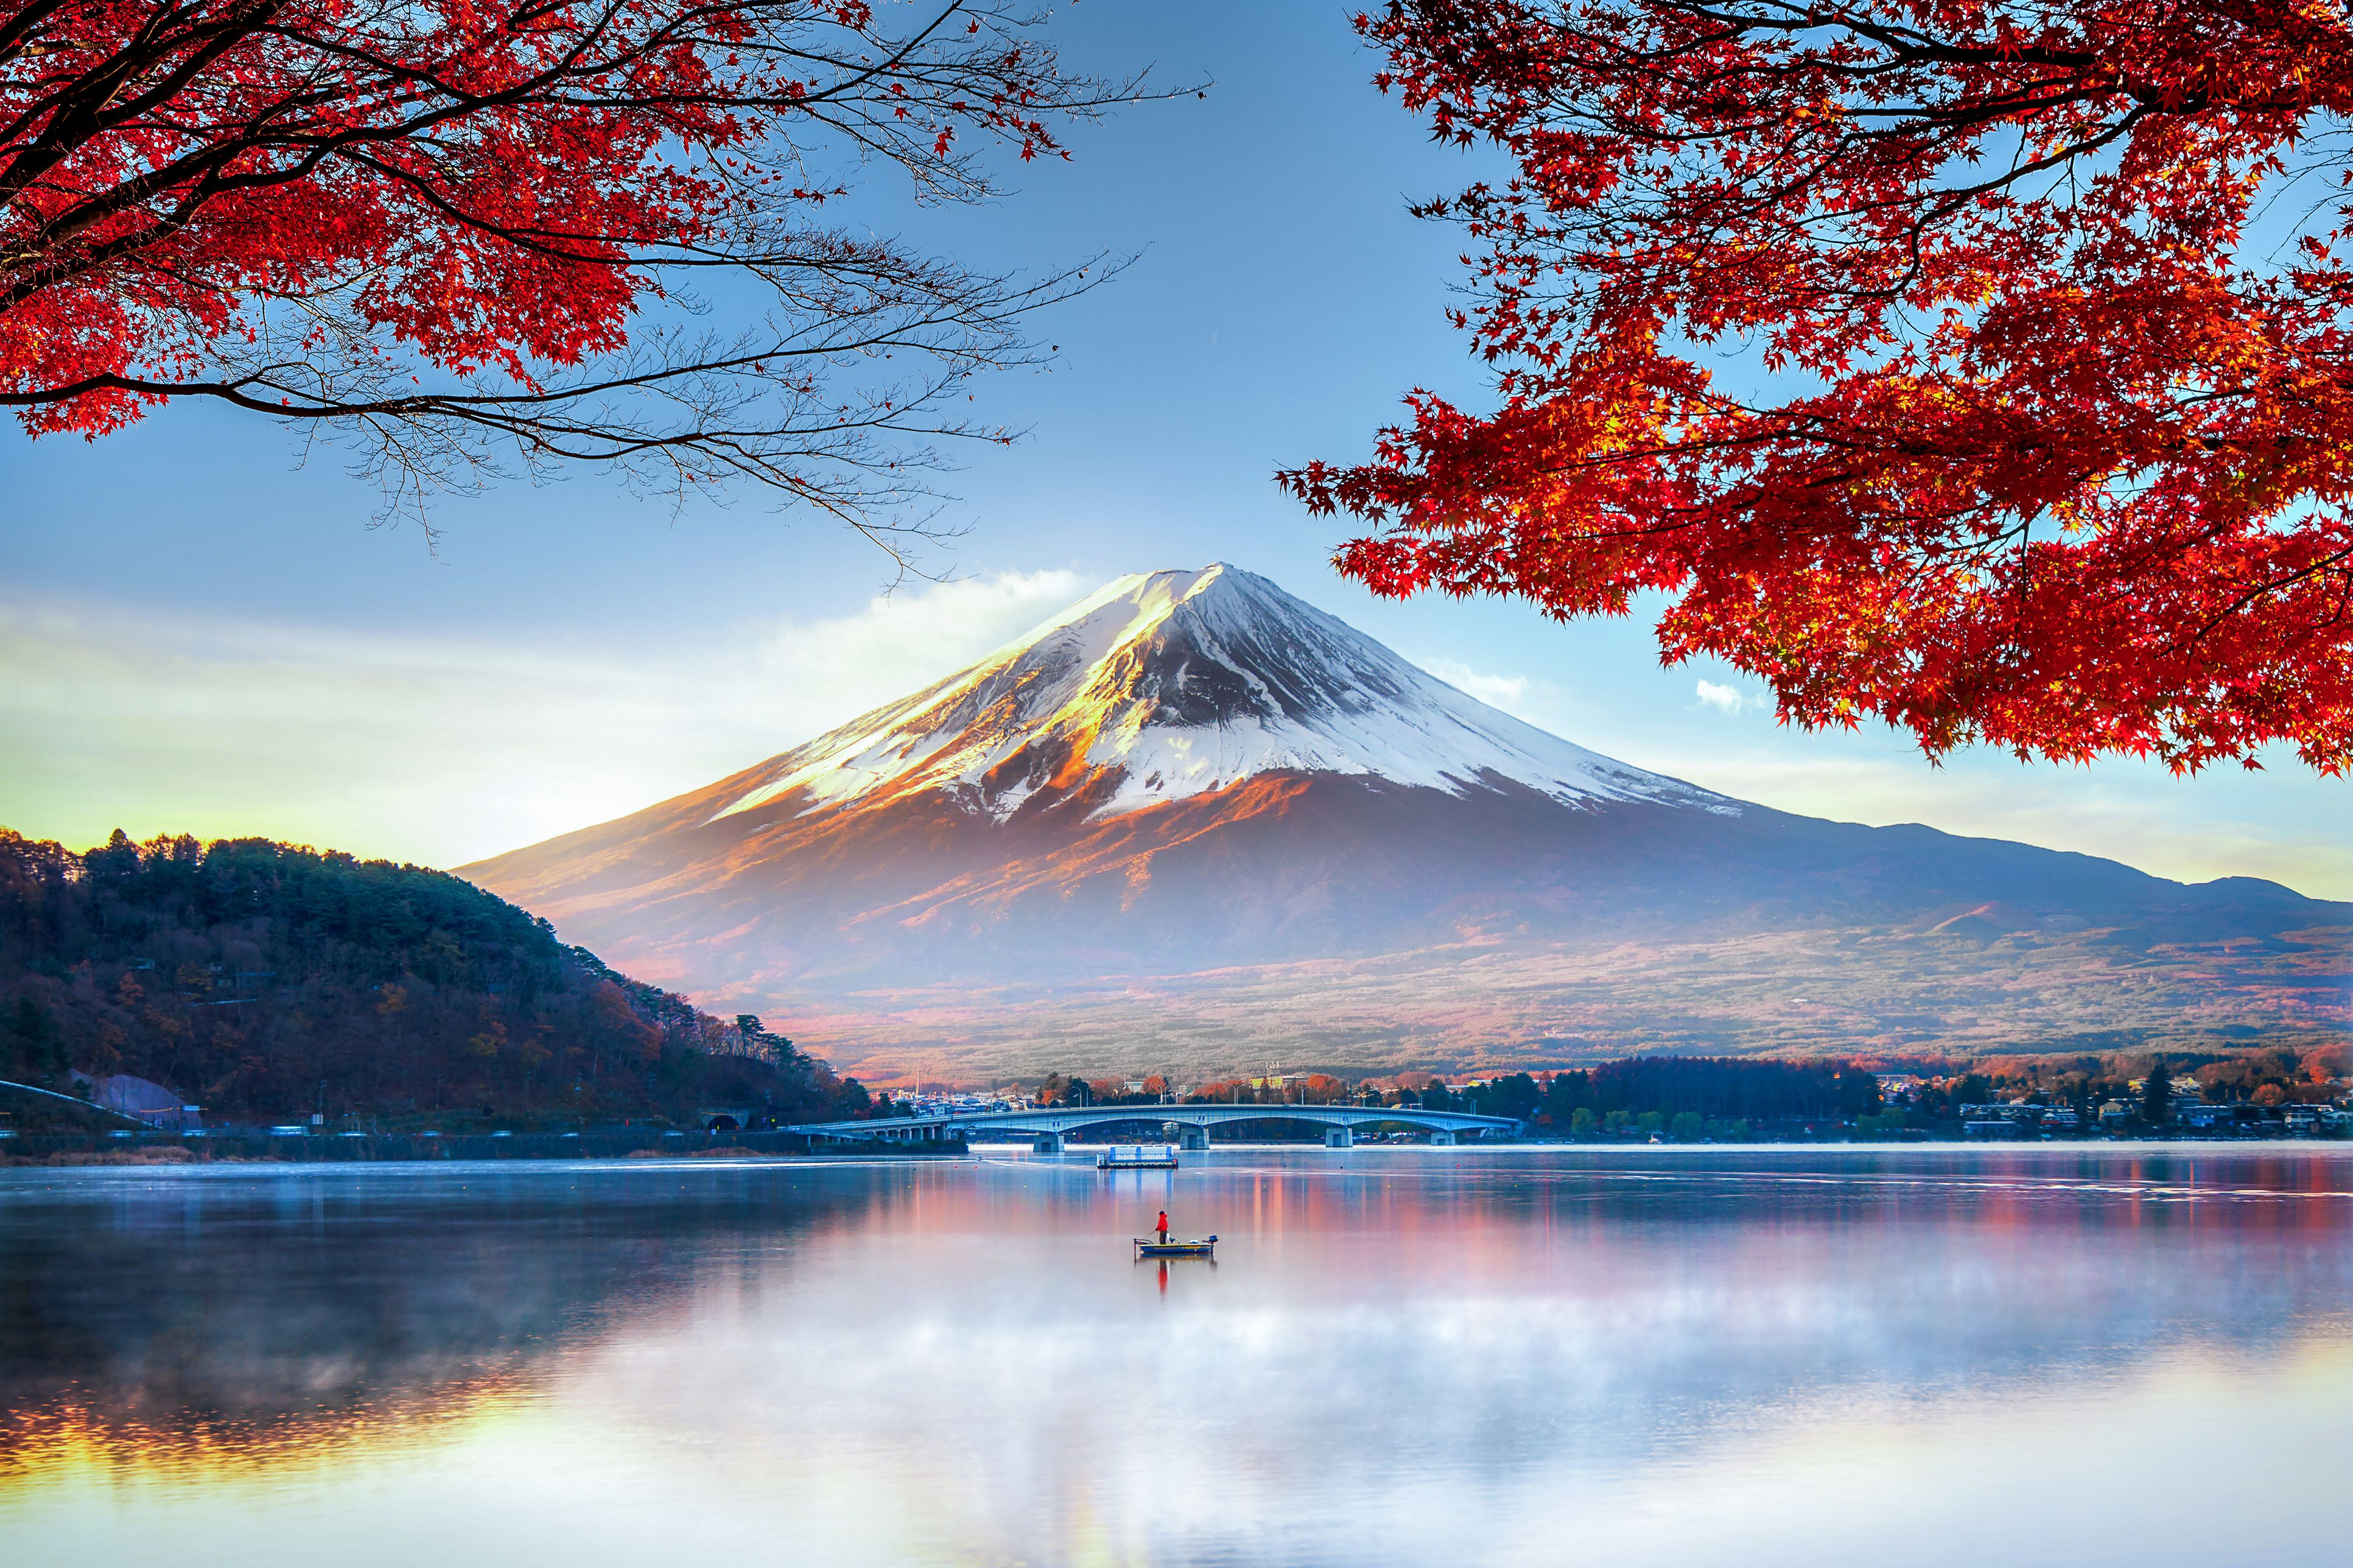 Mount Fuji The Most Famous Mountain In Japan